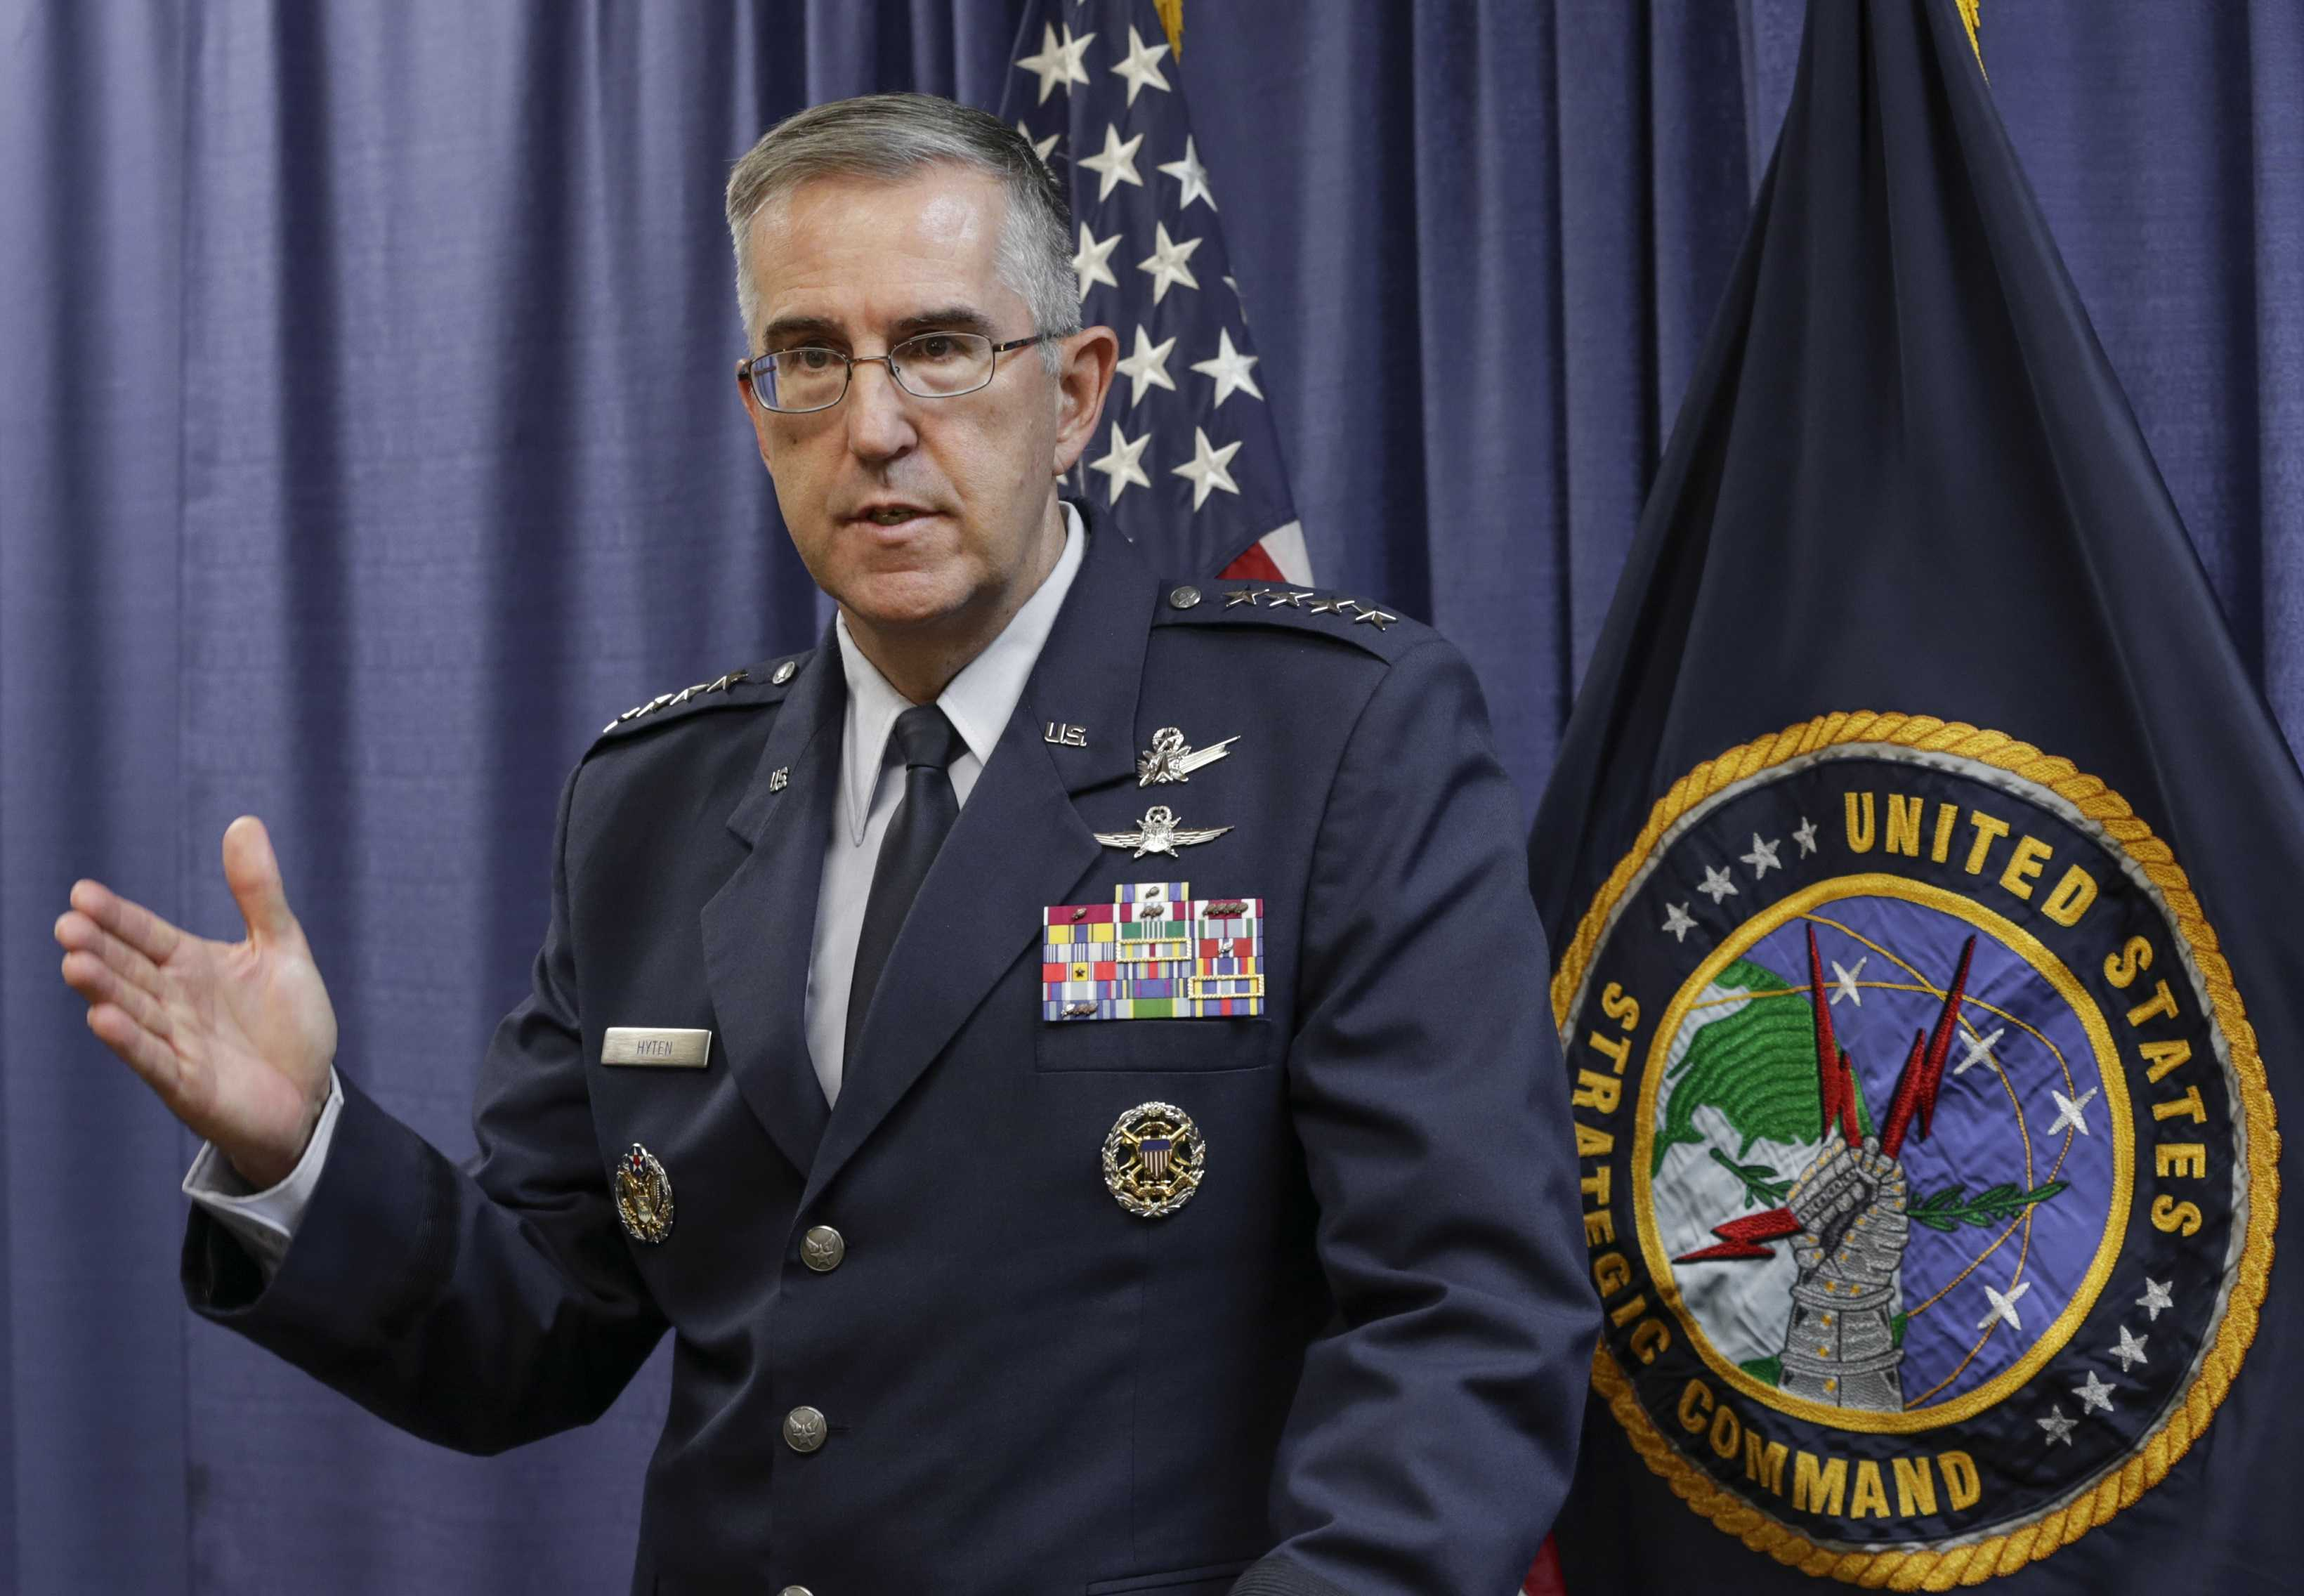 Top general says he'd push back against 'illegal' nuclear strike order